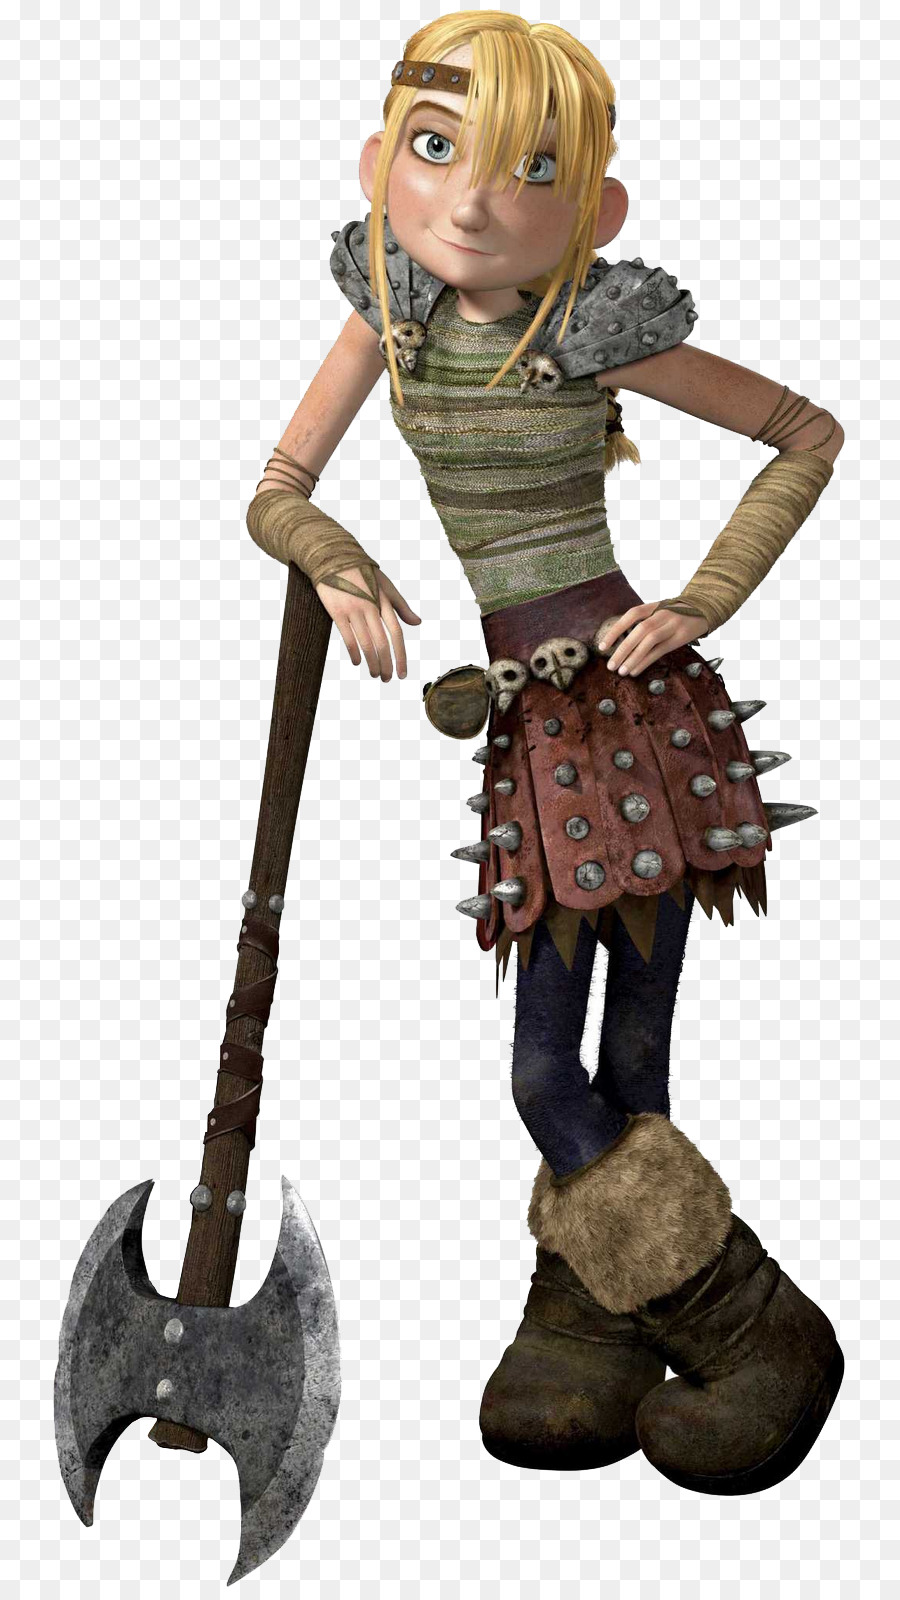 How to train your dragon astrid ruffnut hiccup horrendous haddock how to train your dragon astrid ruffnut hiccup horrendous haddock iii tuffnut your ccuart Images